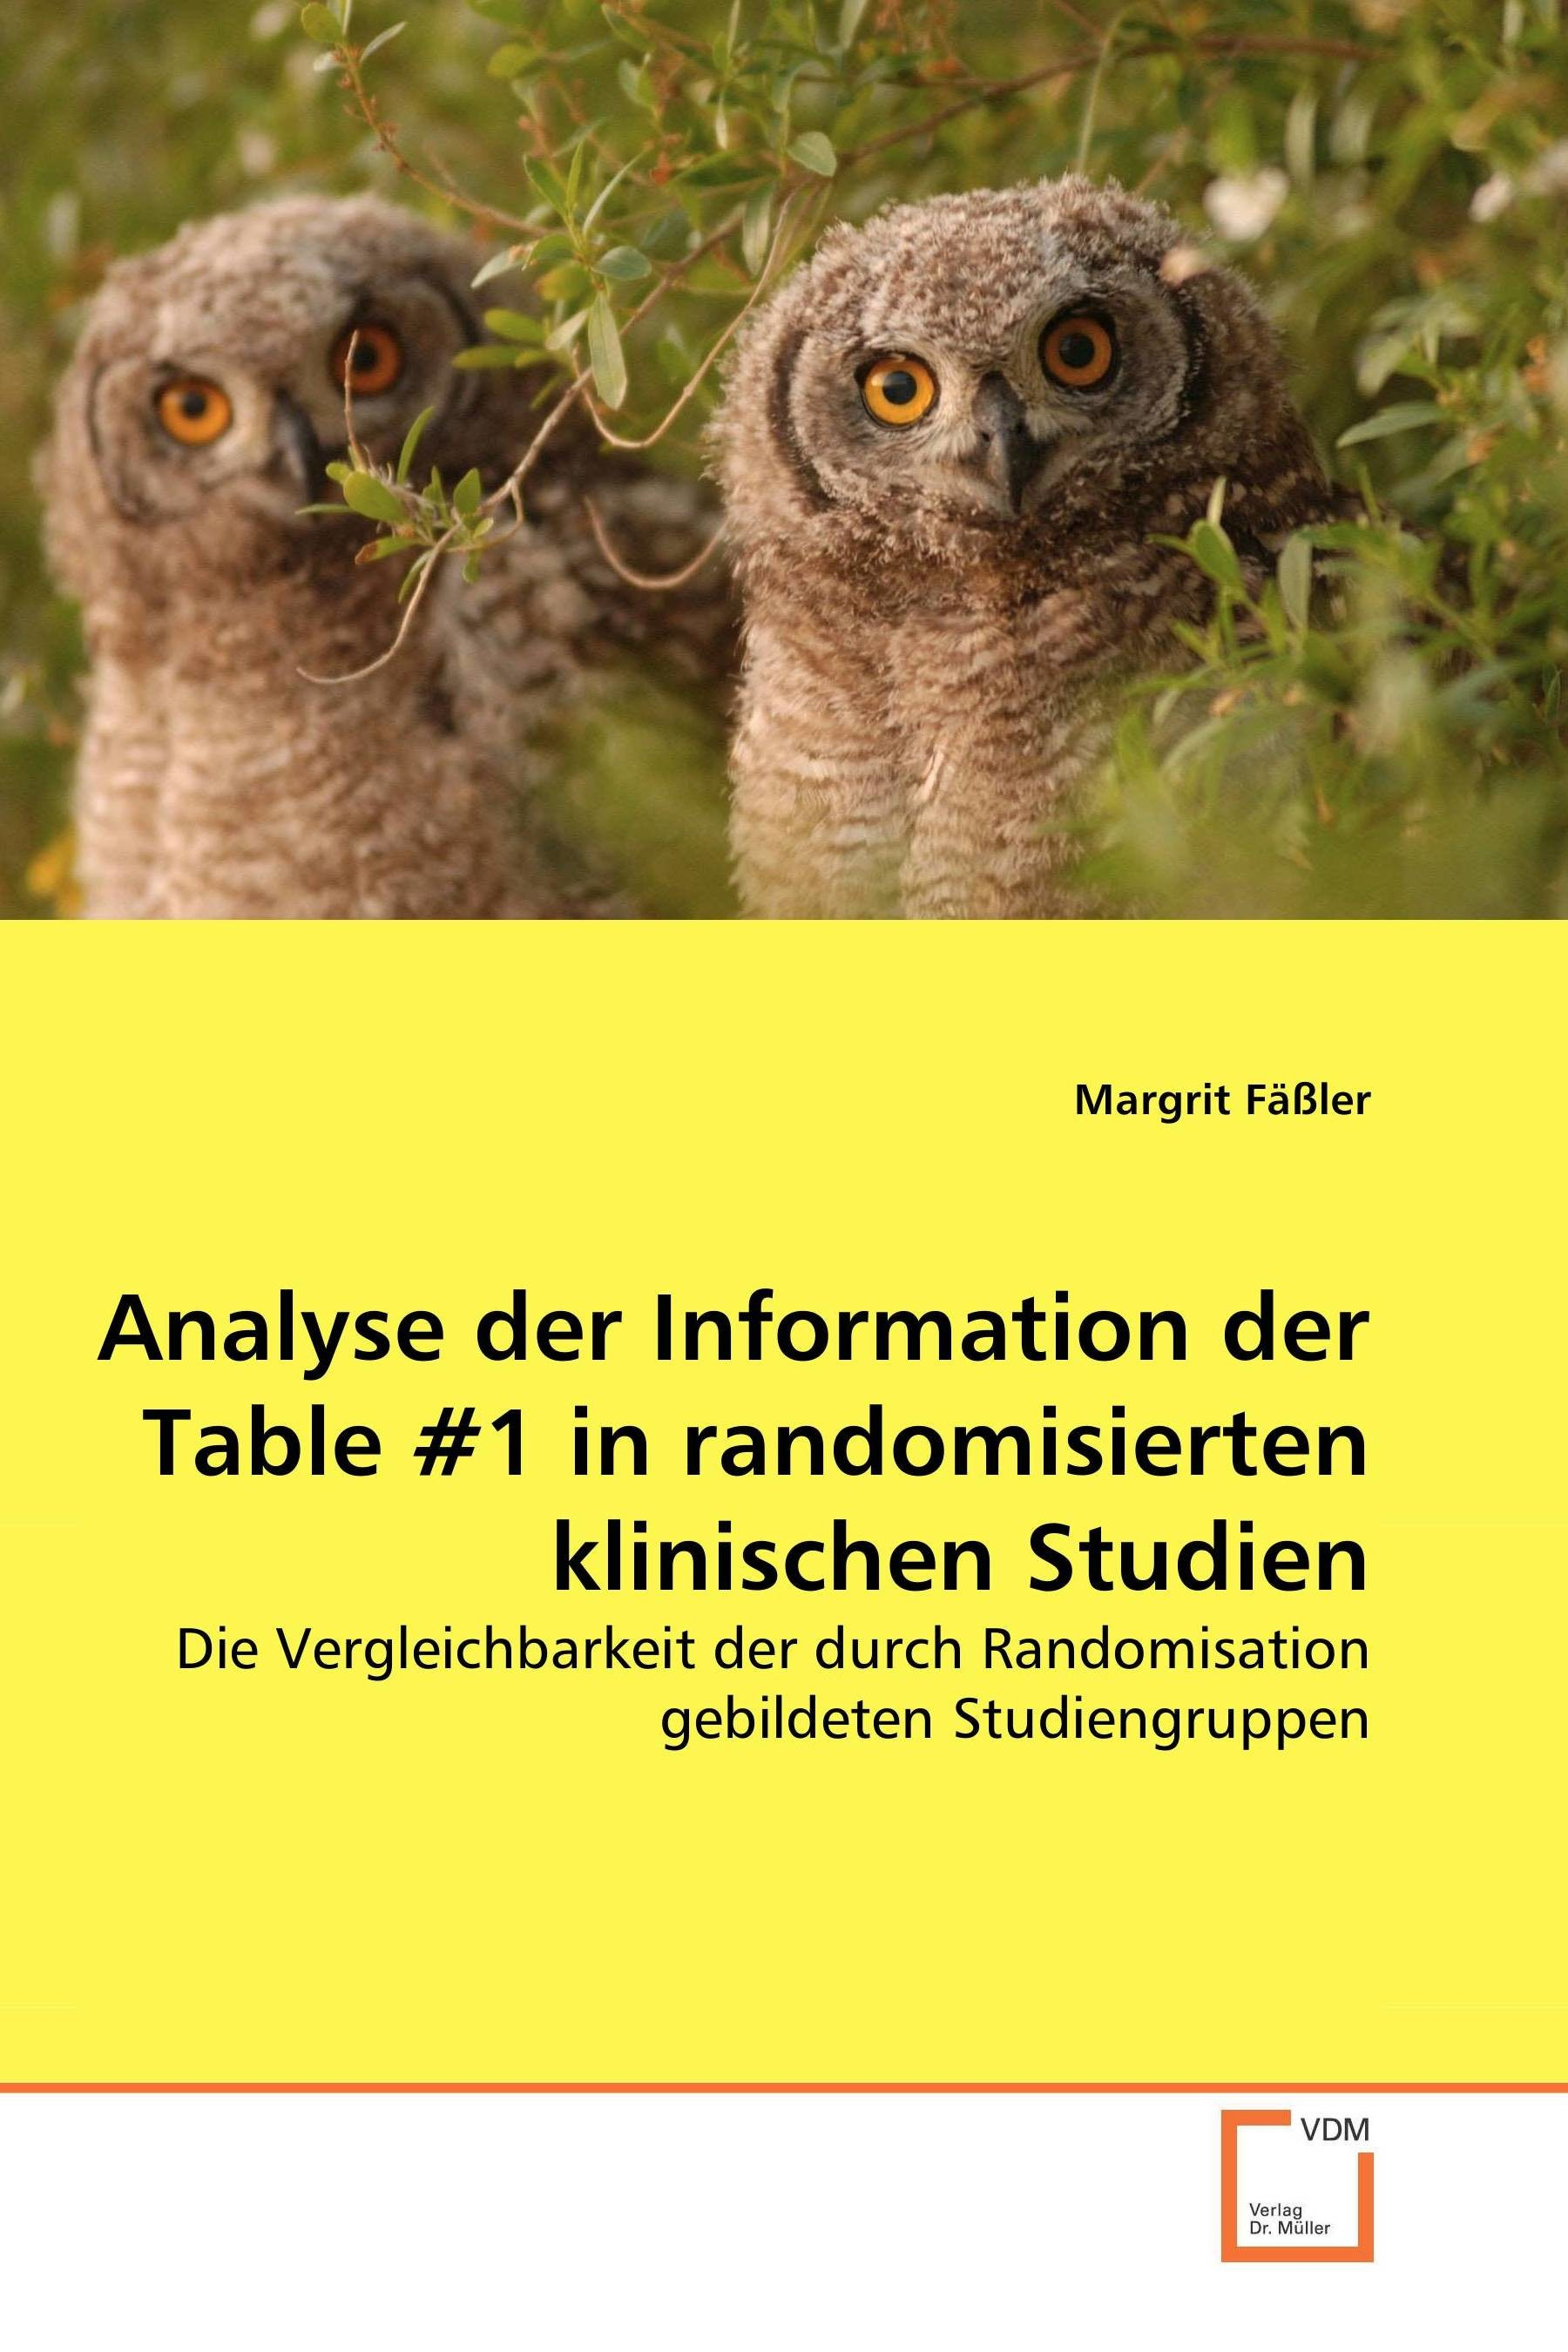 Analyse der Information der Table #1 in randomisierten klinischen Studien